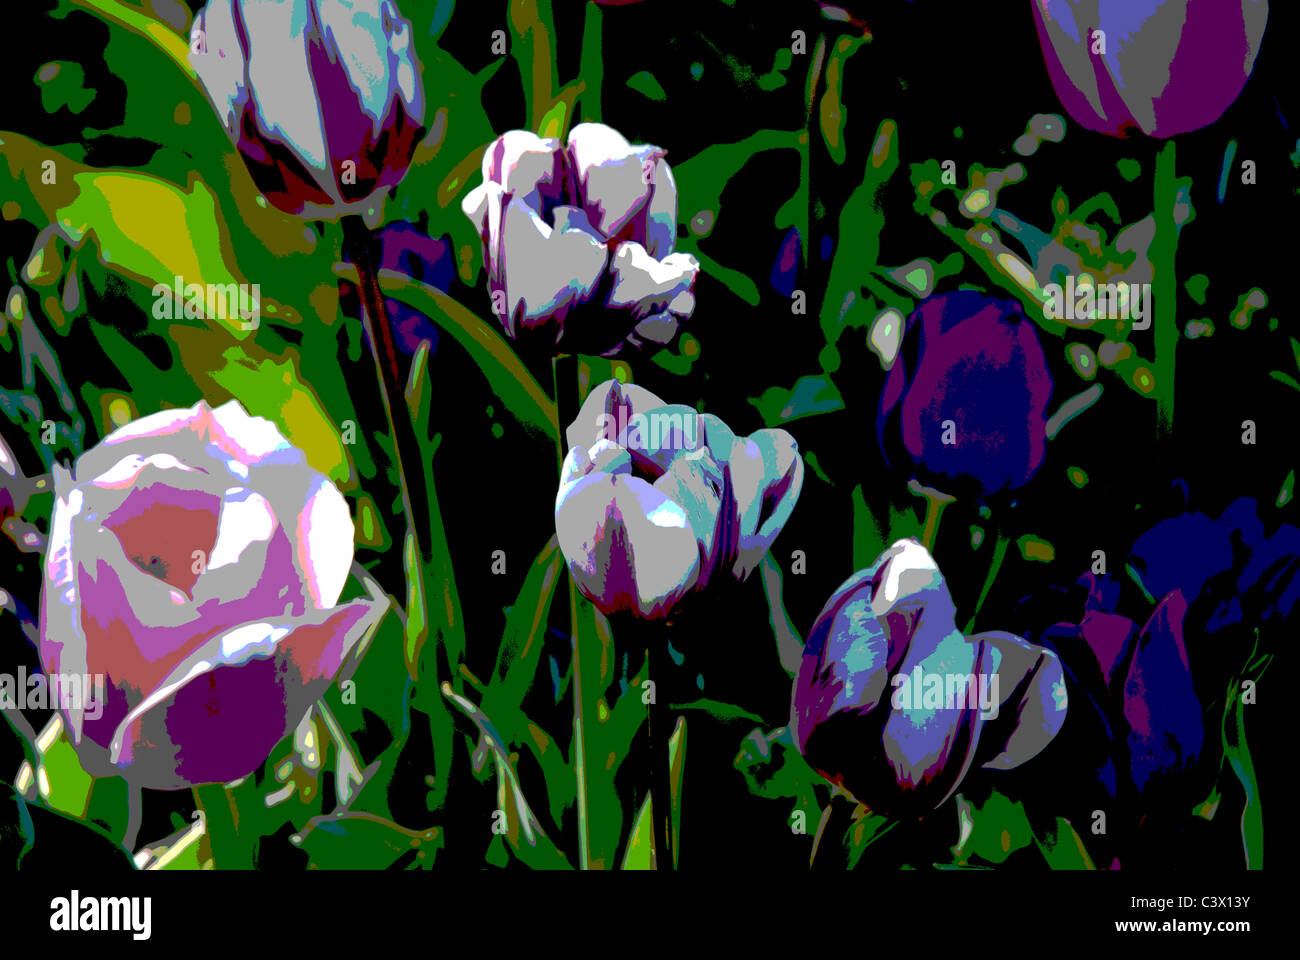 tulips with special effects, posterized in Photoshop - Stock Image